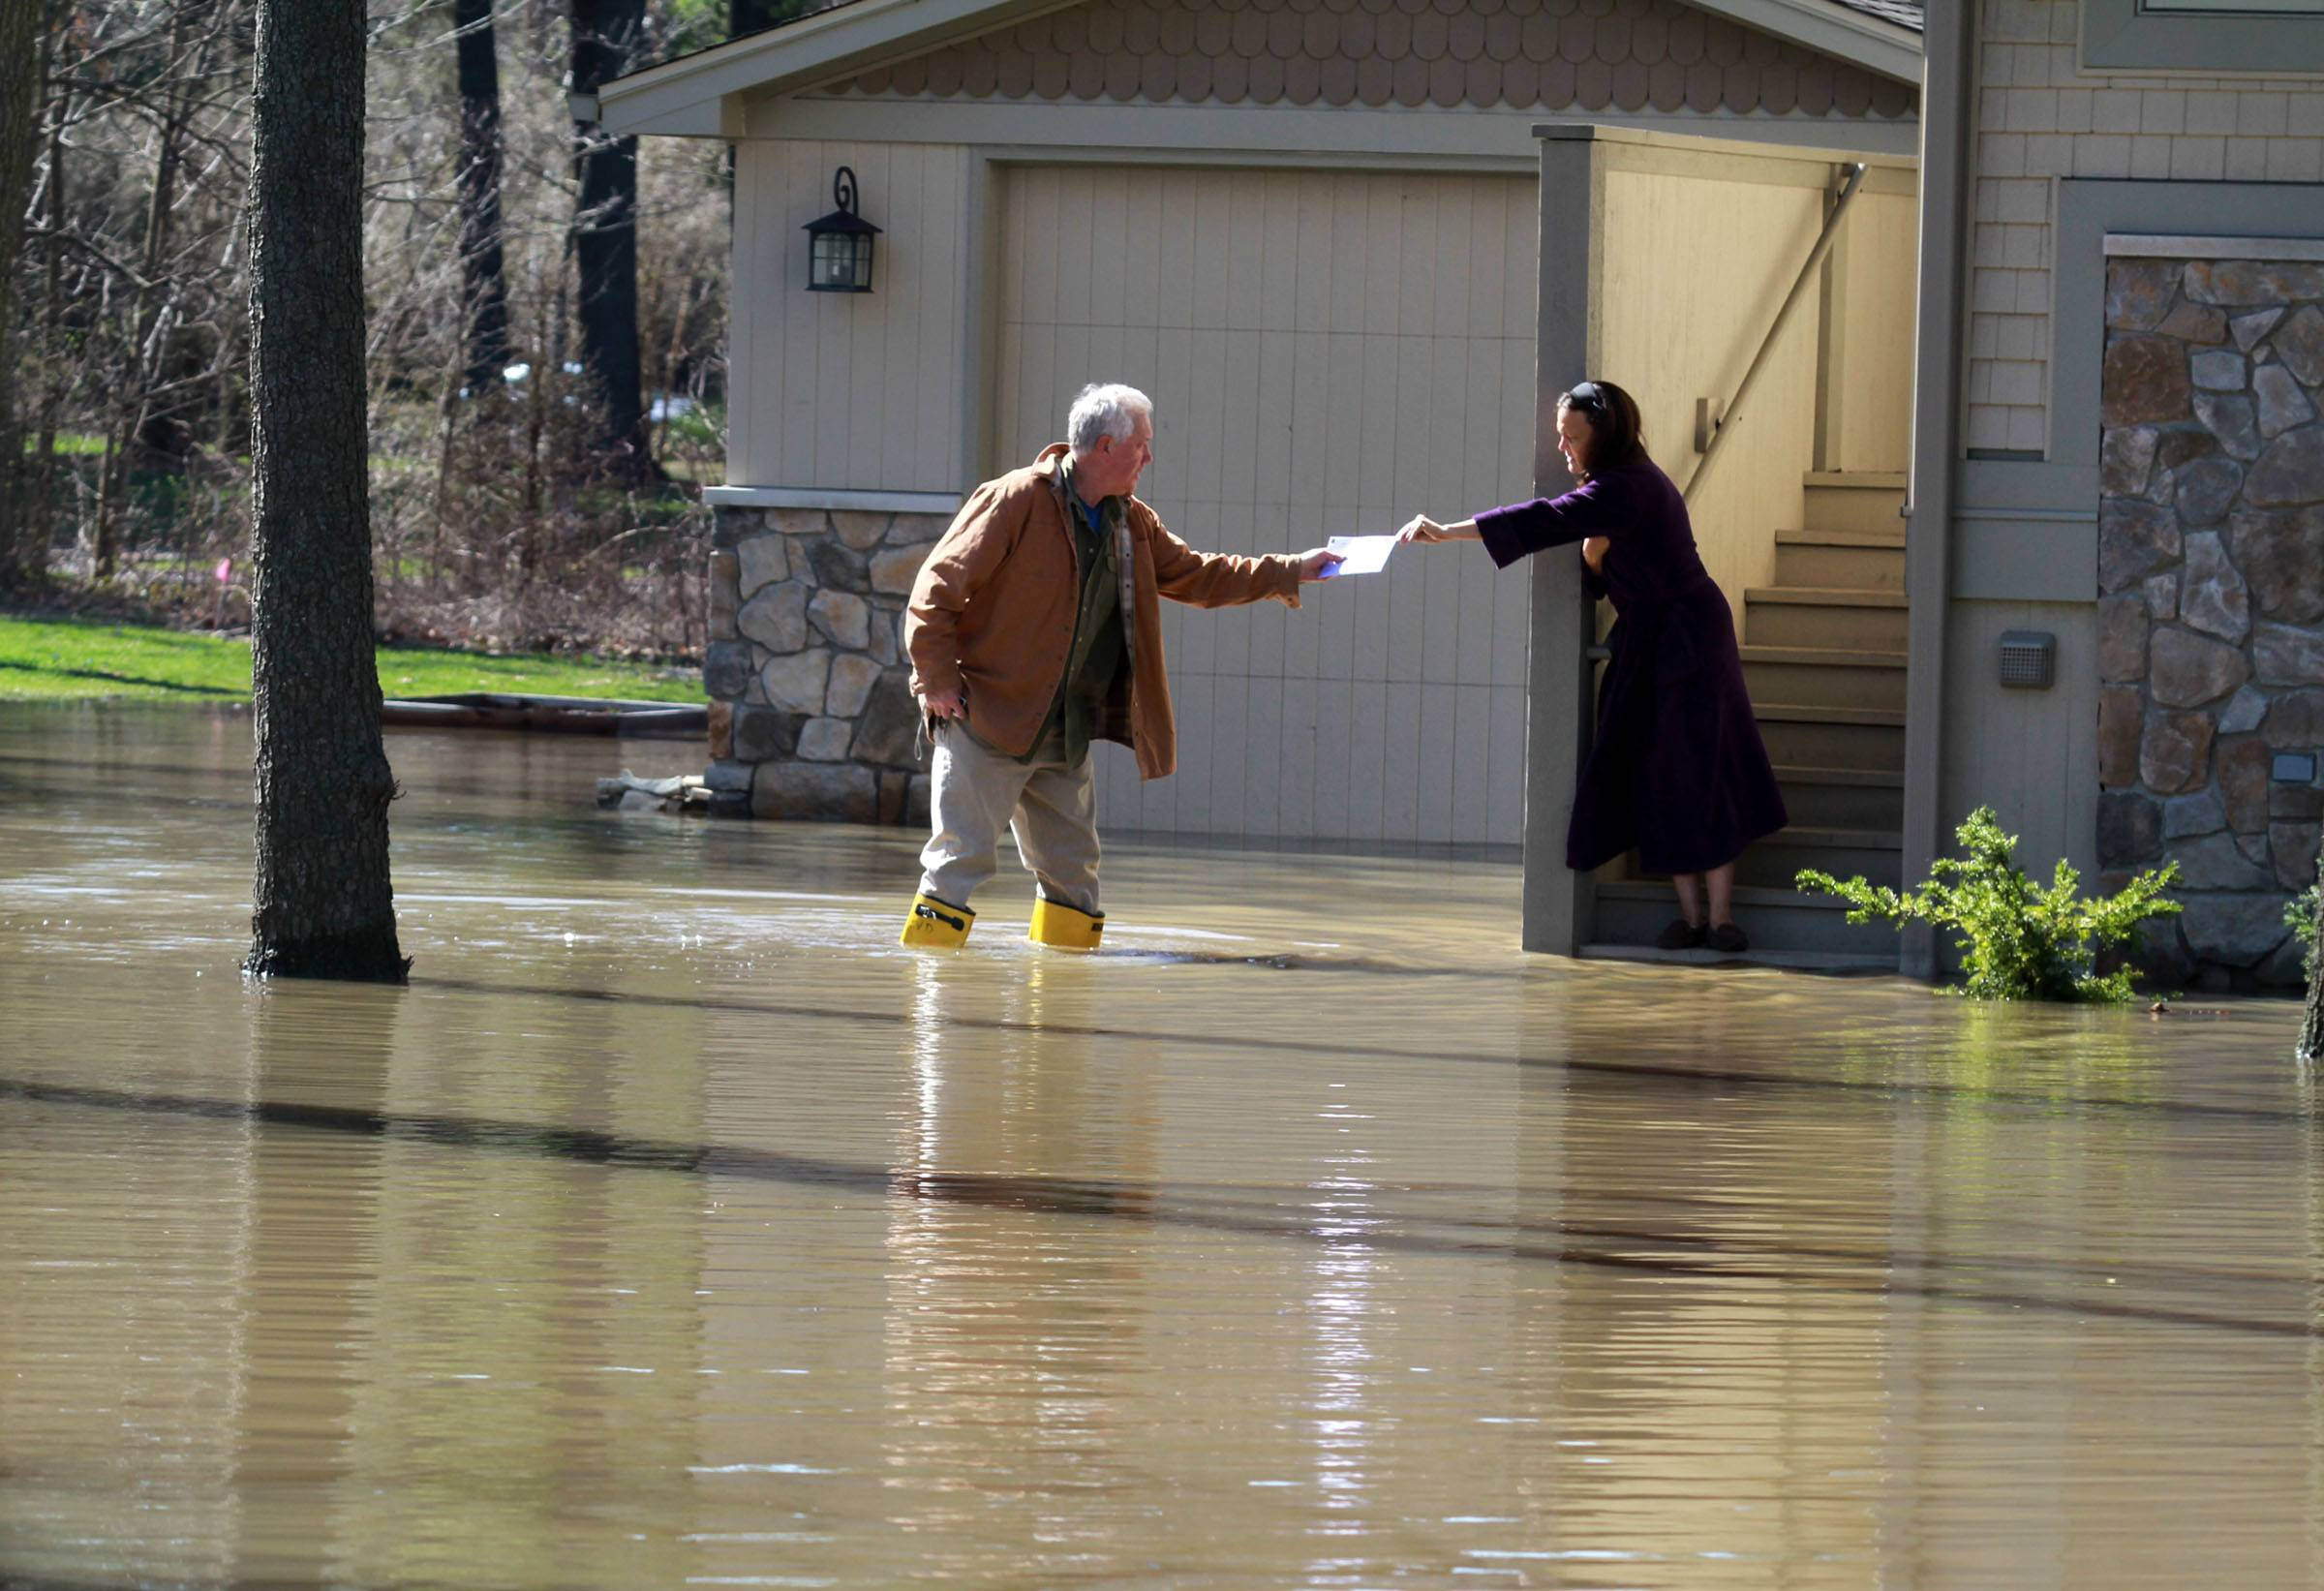 George LeClaire/gleclaire@dailyherald.com\ Michelle VanDuynhoven gives her husband, John, a letter to mail at the bottom of the steps to their home on Stonegate Circle in Lincolnshire on April 20, 2013. John said there was no water in their house because they rebuilt it higher up in 2010.